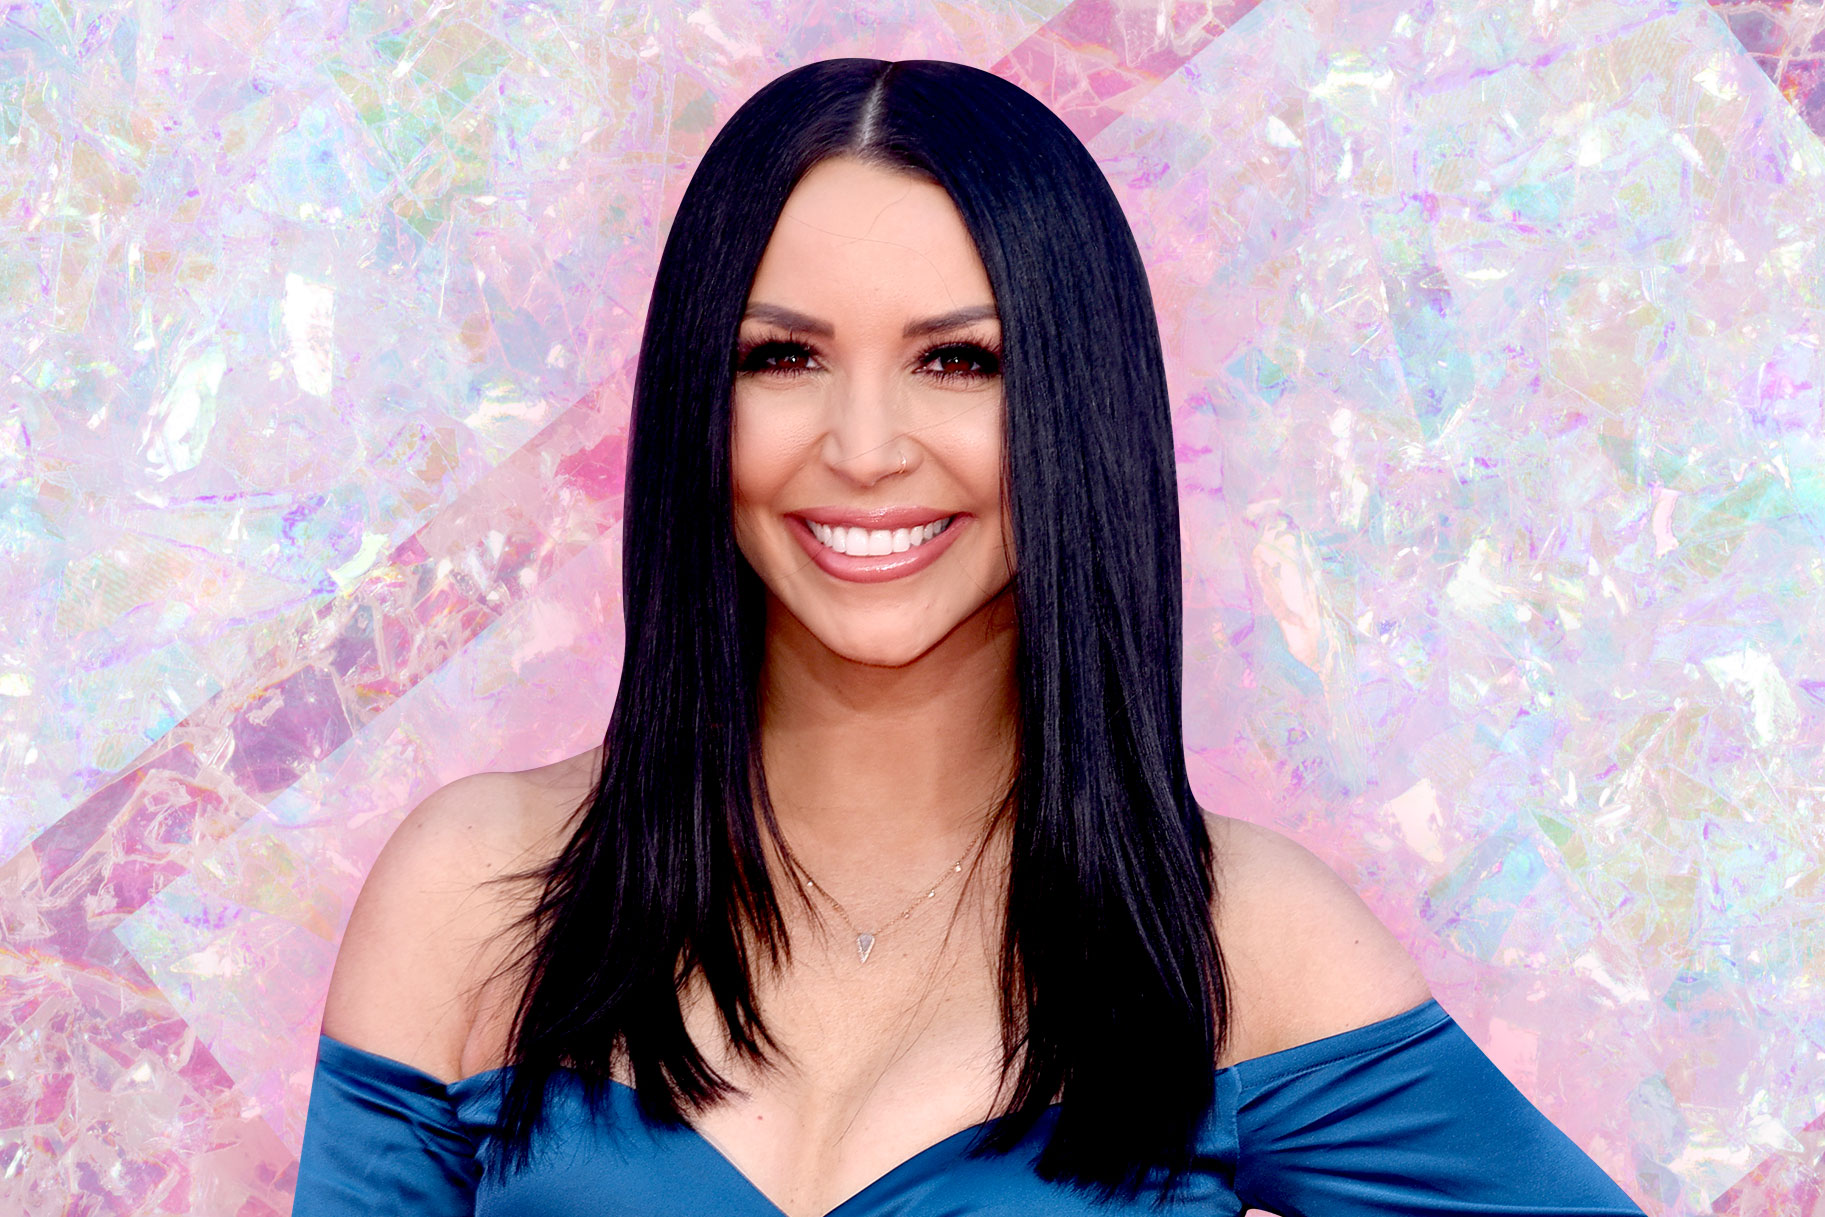 Scheana Shay's Favorite Beauty Product